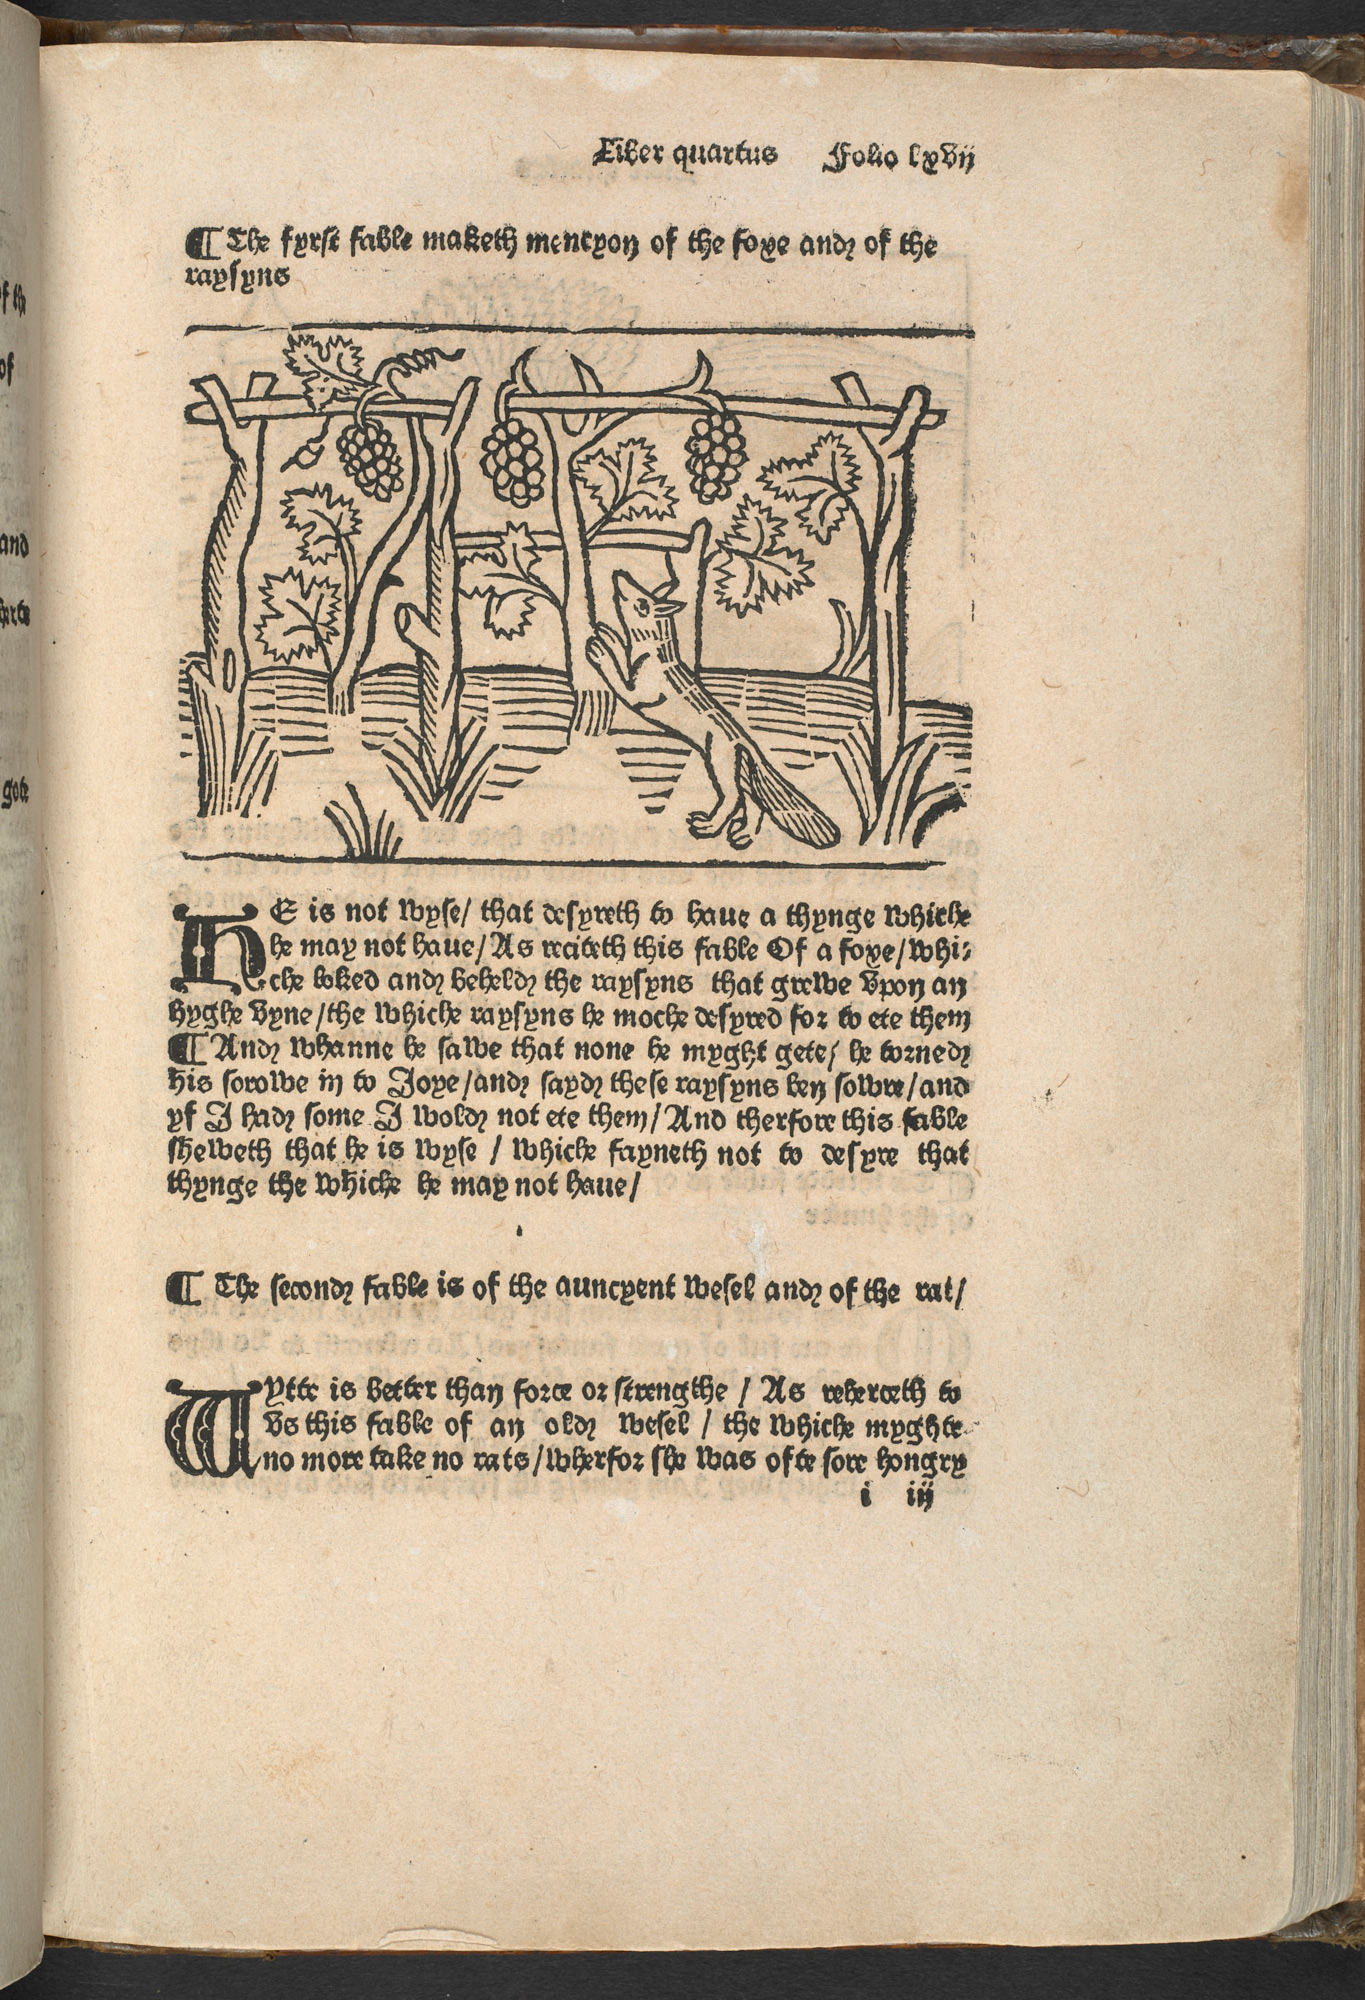 A printed page from a book, showing an image of a fox trying to reach some grapes, with writing printed underneath.